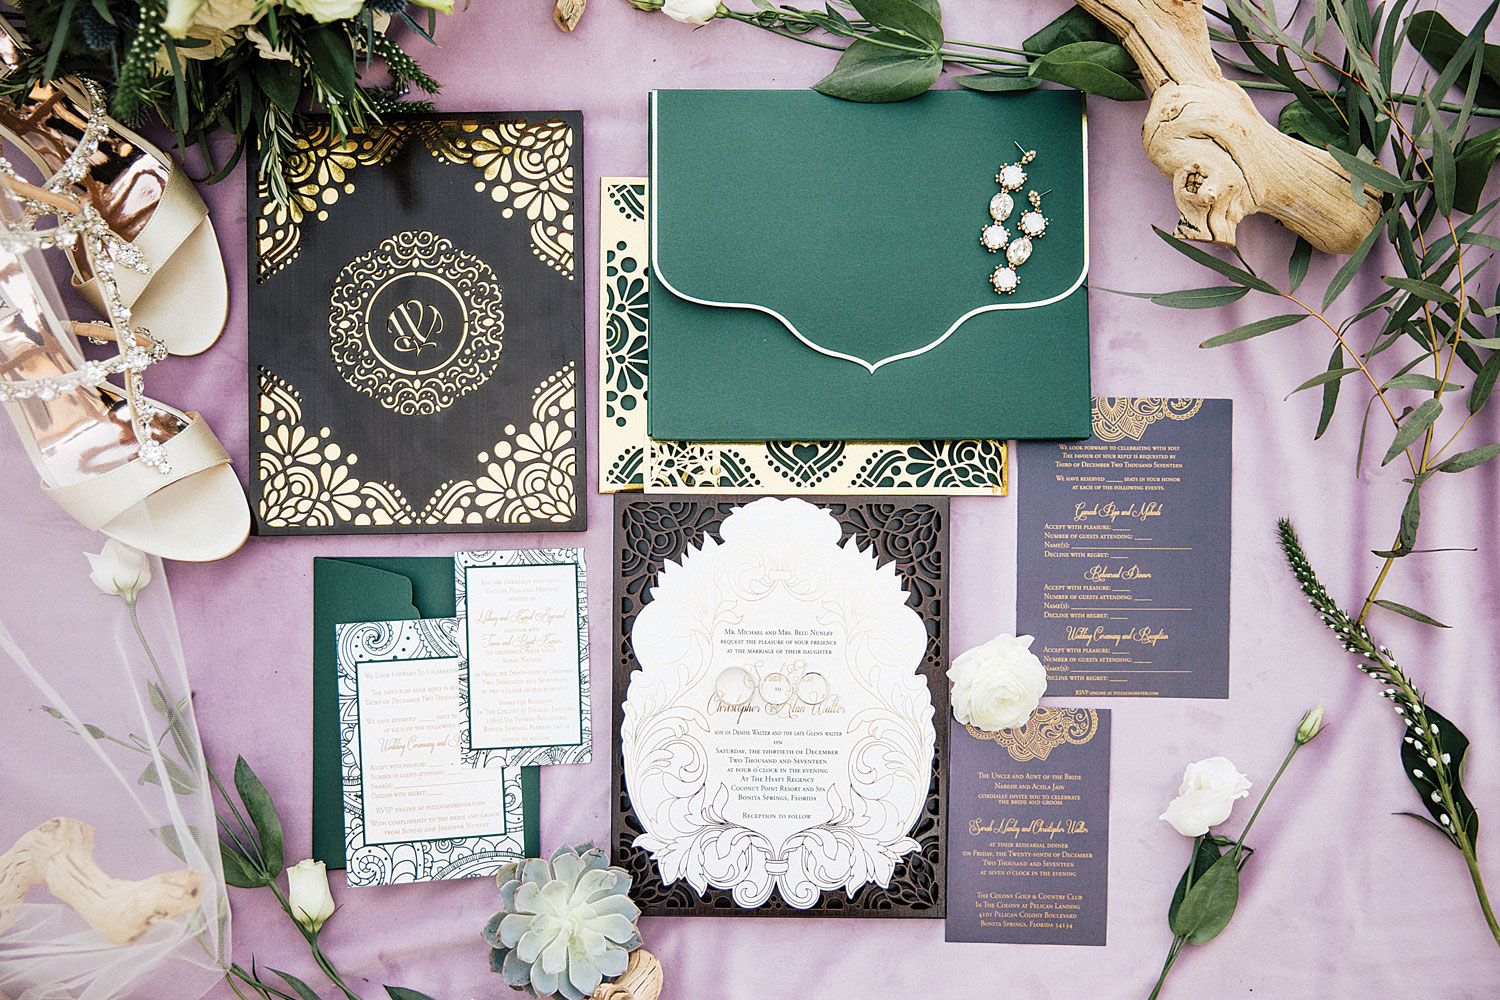 Inside Weddings magazine Spring 2019 issue pretty purple and green invitation suite by Oda Creative